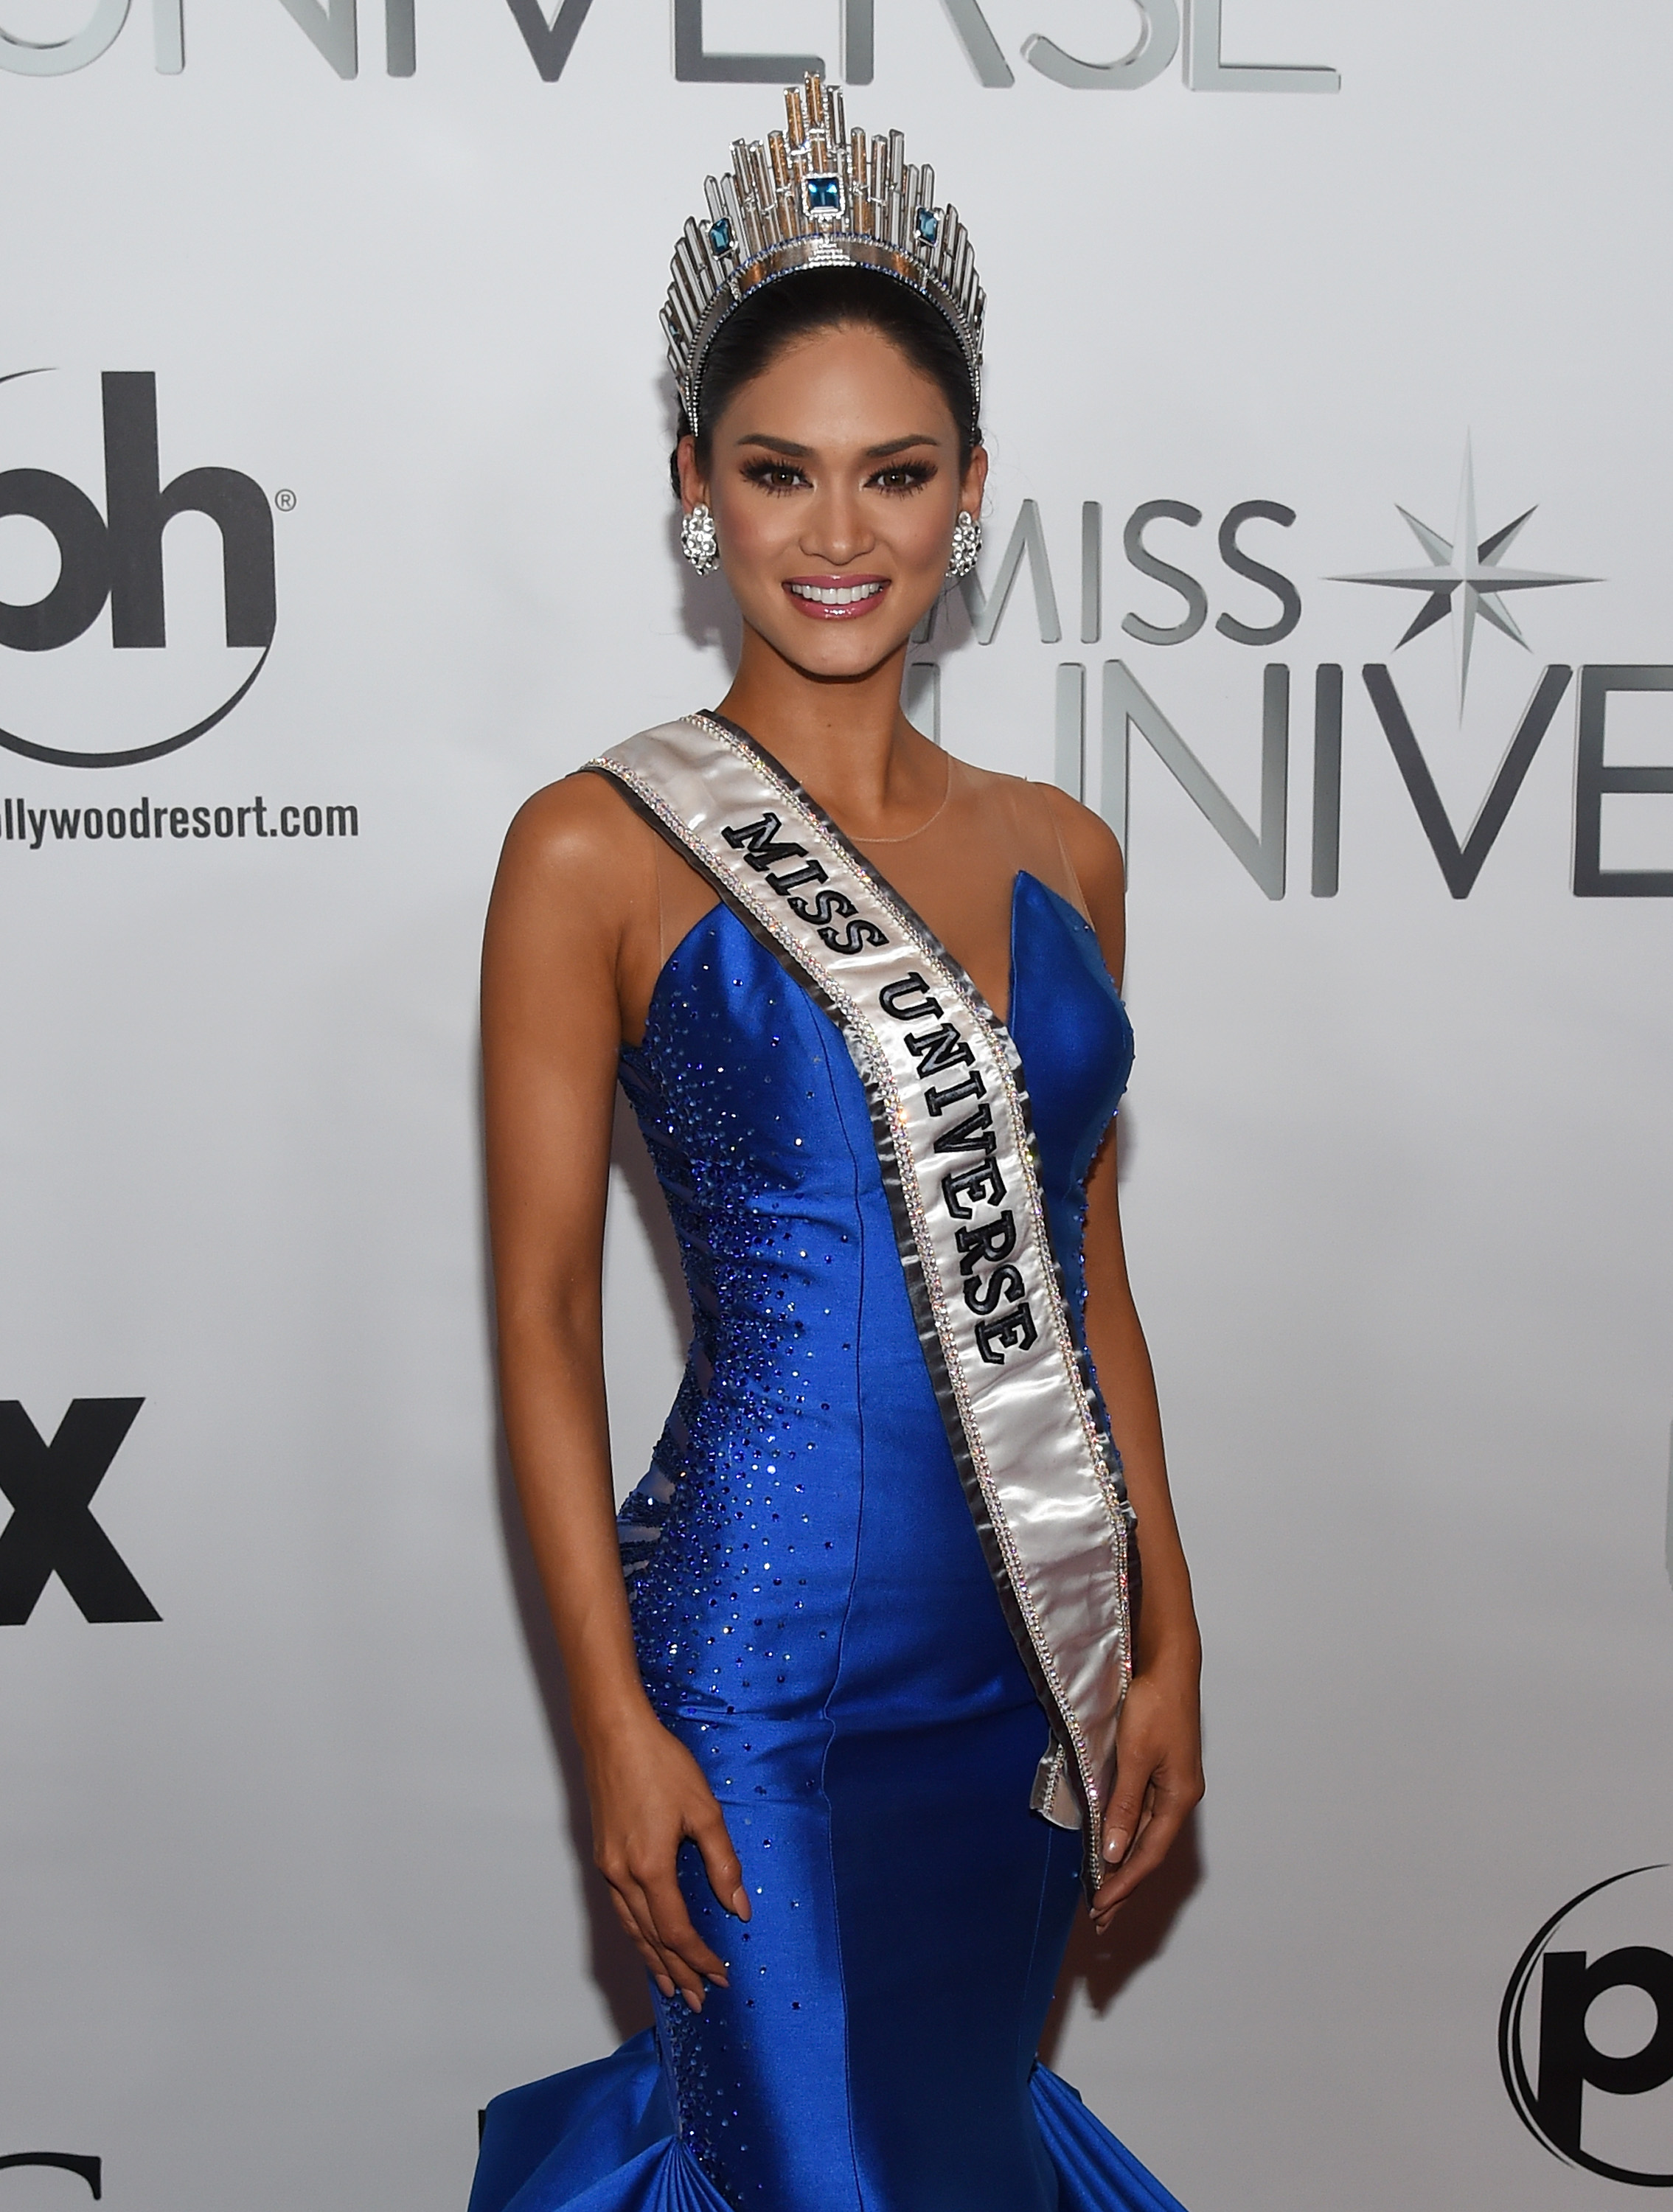 Who Is Miss Universe 2015, Pia Alonzo Wurtzbach? 7 Things